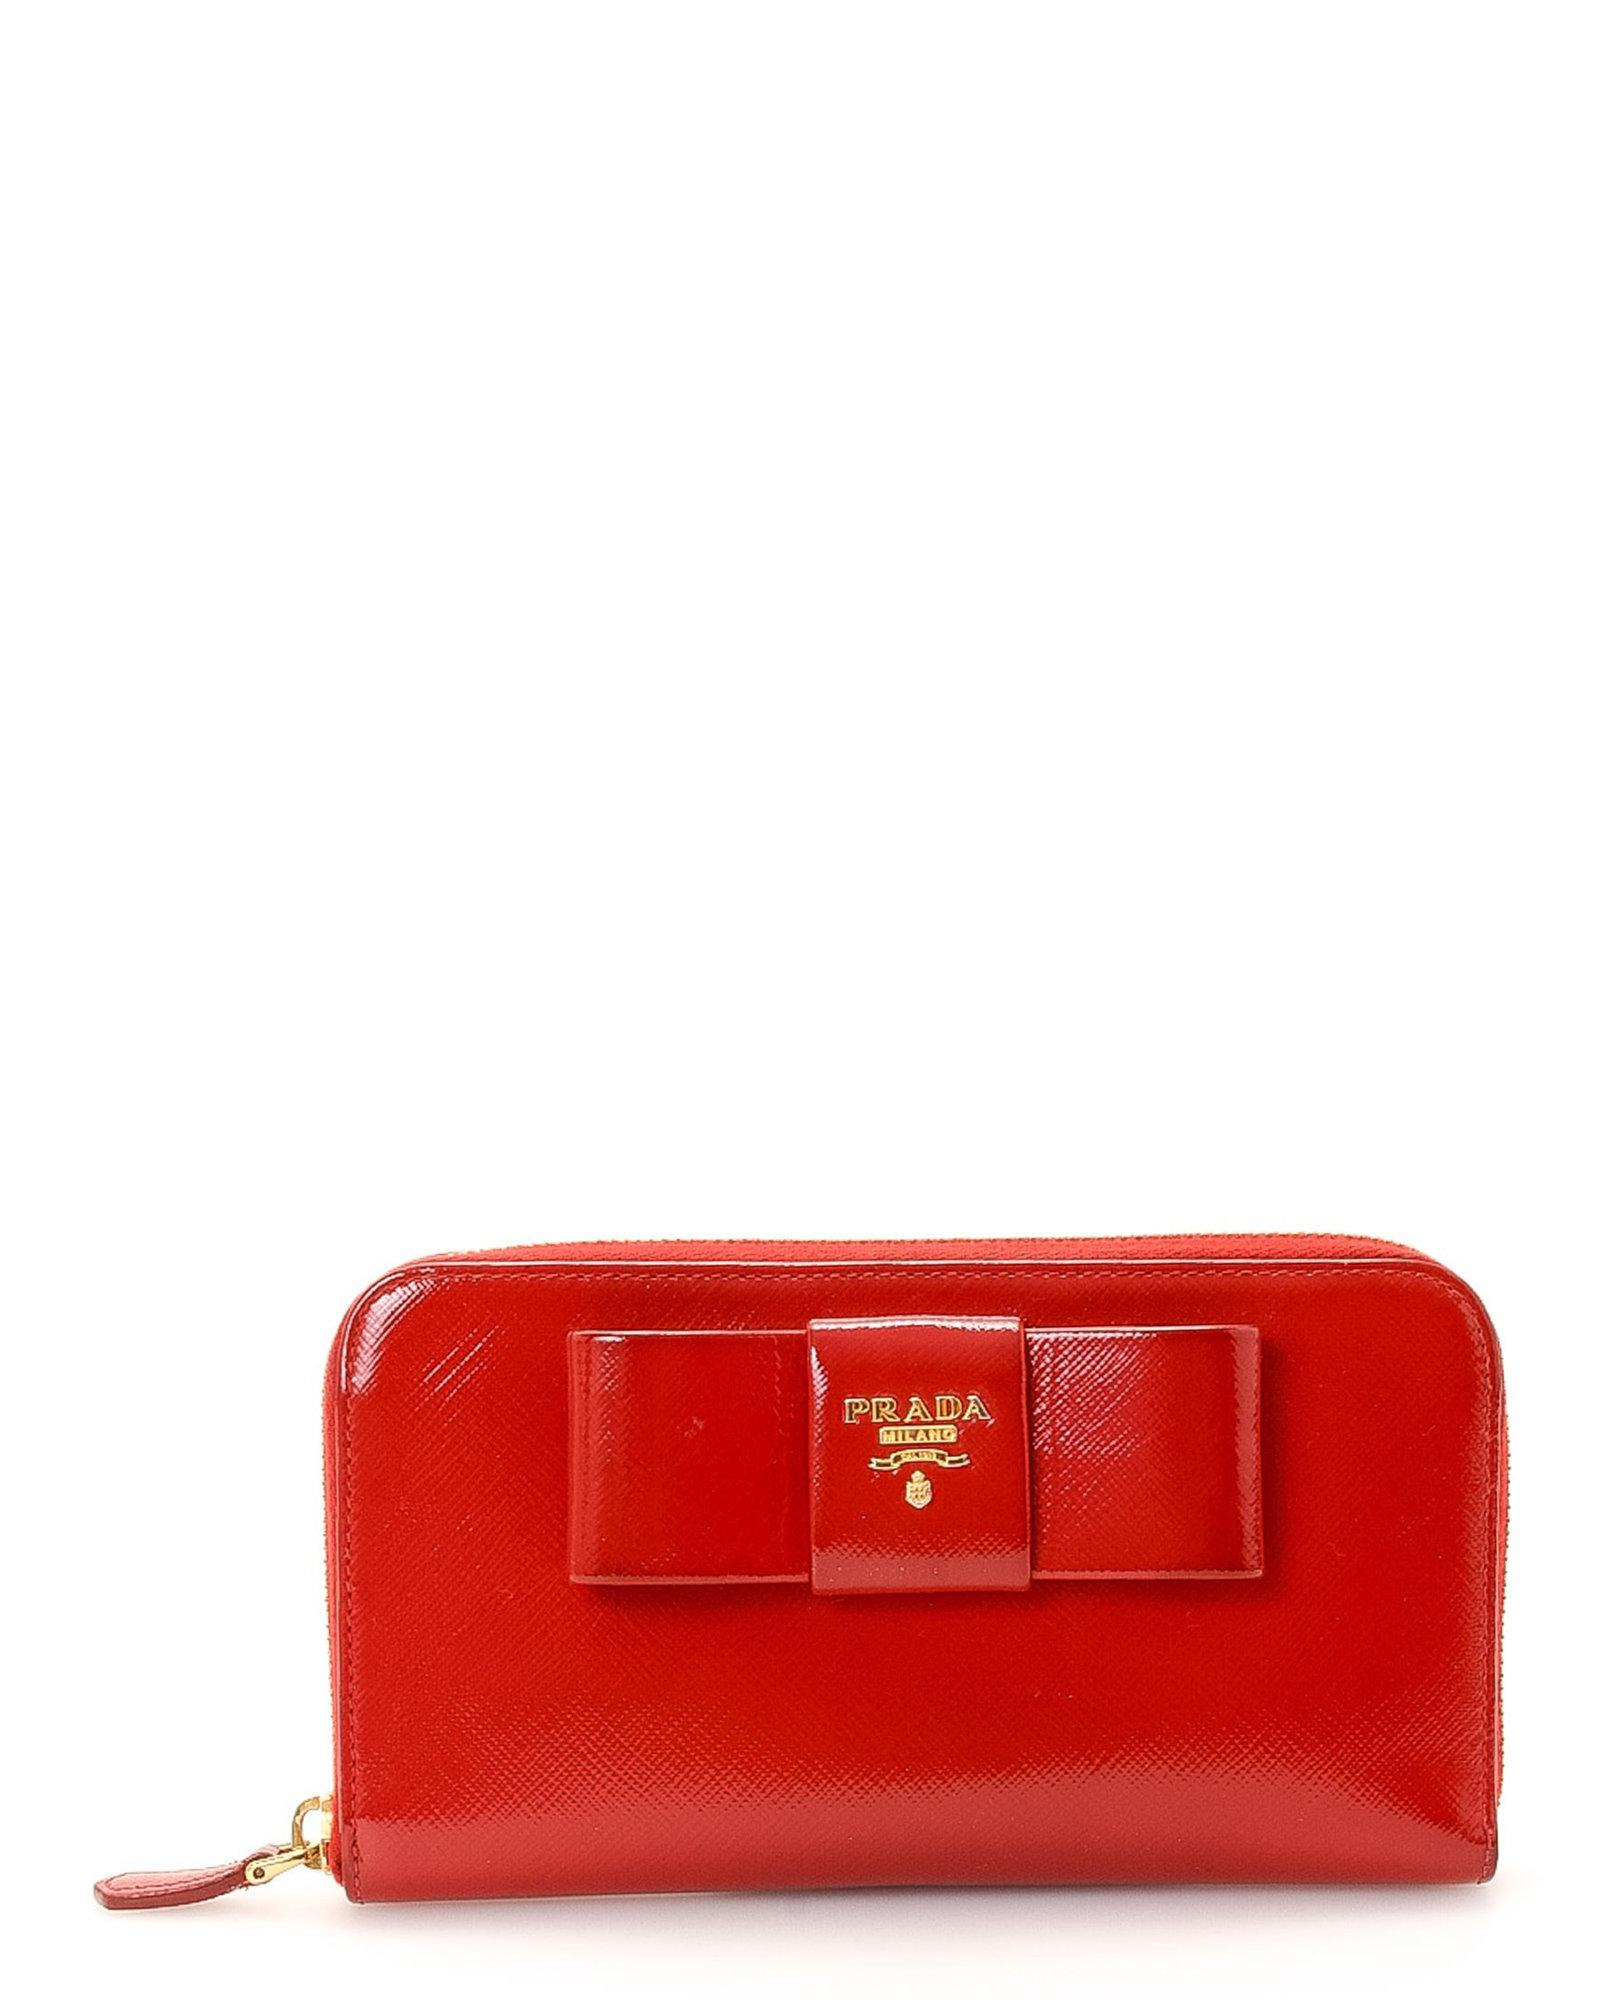 7e1b90837c35 ... amazon prada red bow saffiano lux zip wallet vintage lyst. view  fullscreen 67826 2f2d3